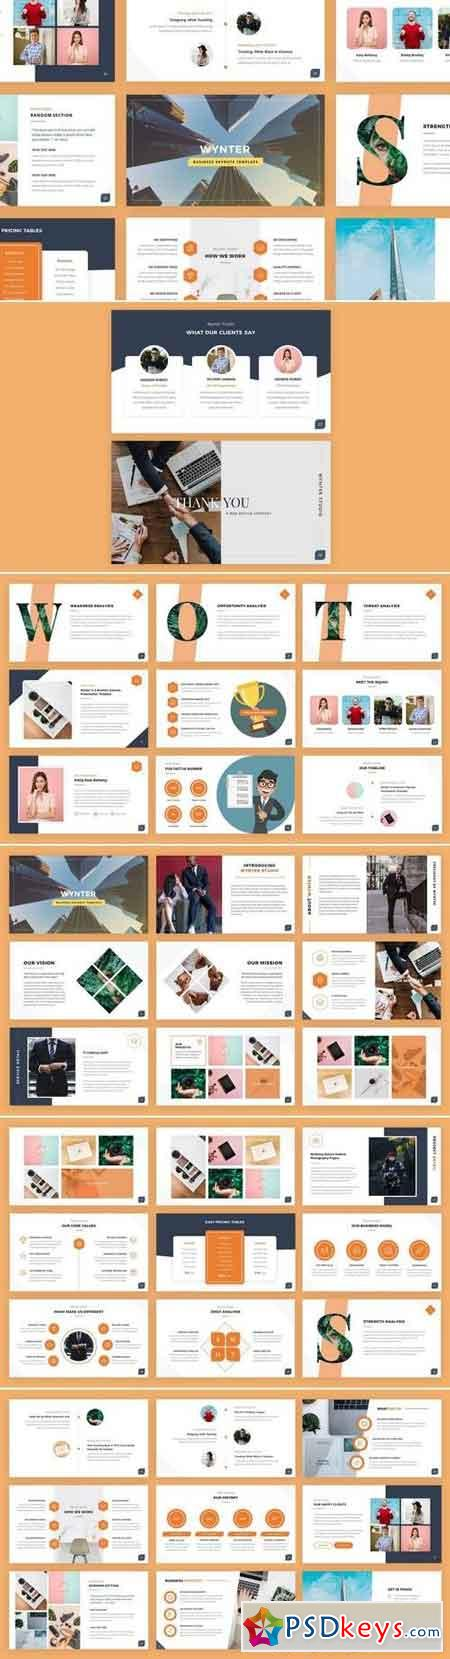 Wynter - Business Keynote Presentation Template